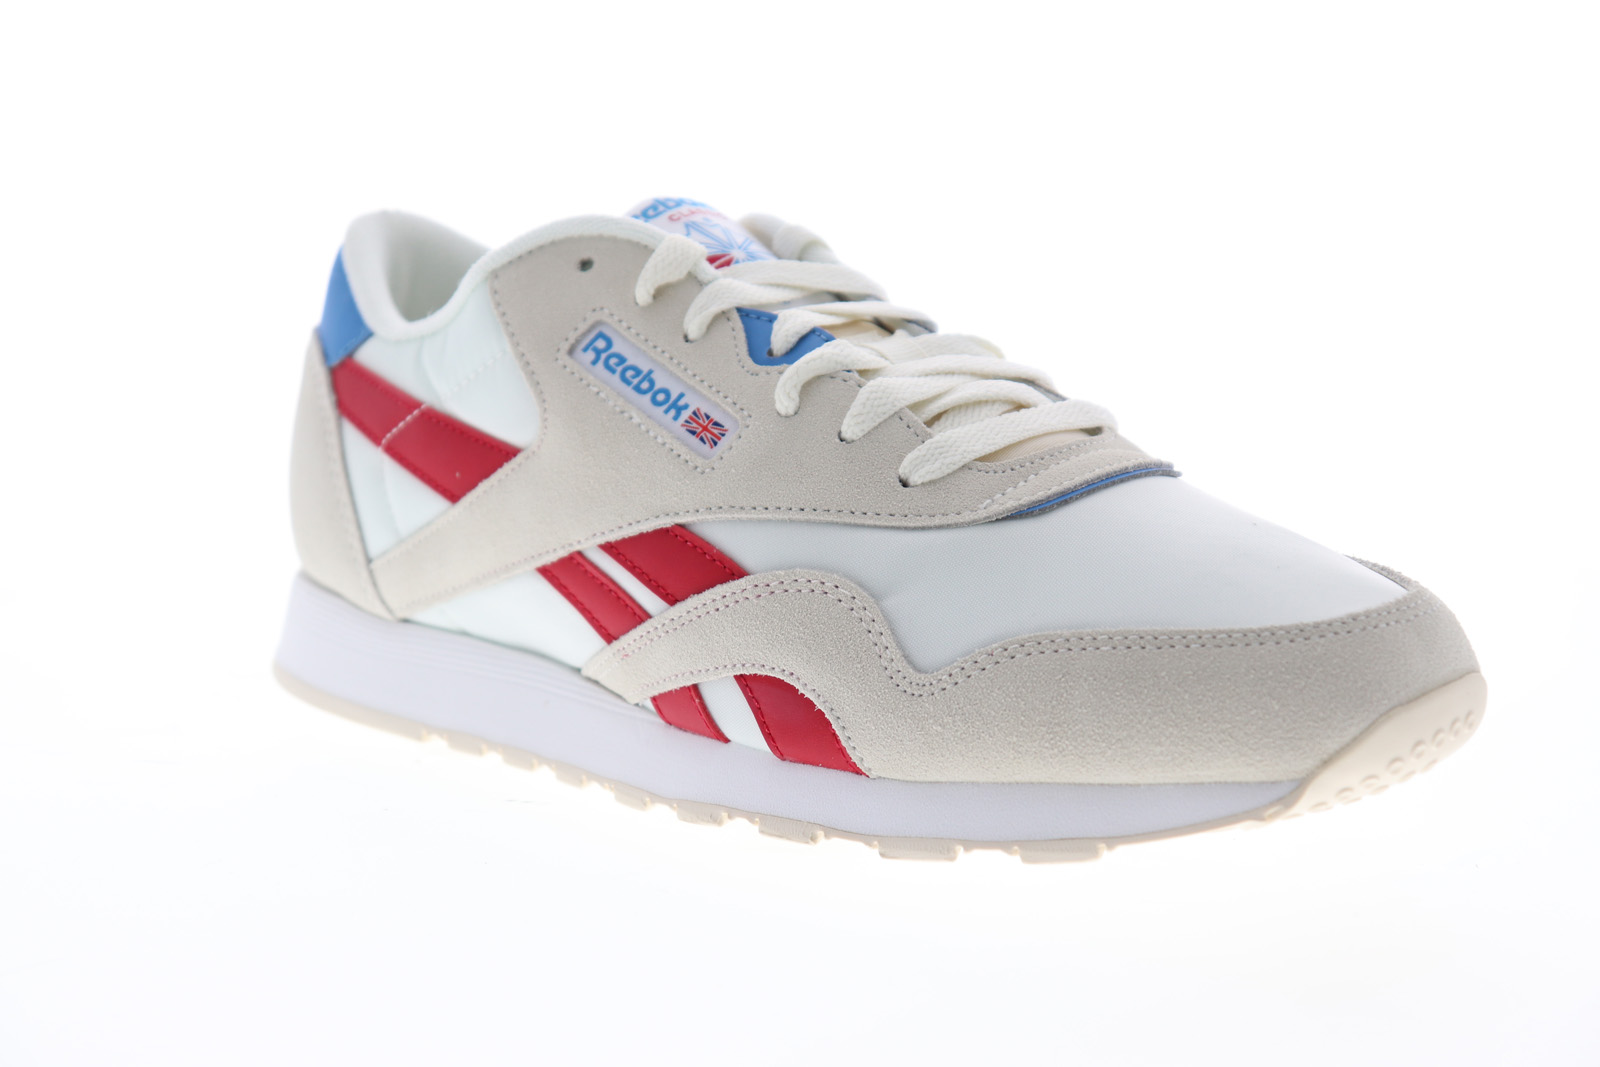 new styles 9cdc2 7a83f Details about Reebok Classic Nylon Mens Beige Suede & Nylon Low Top  Sneakers Shoes